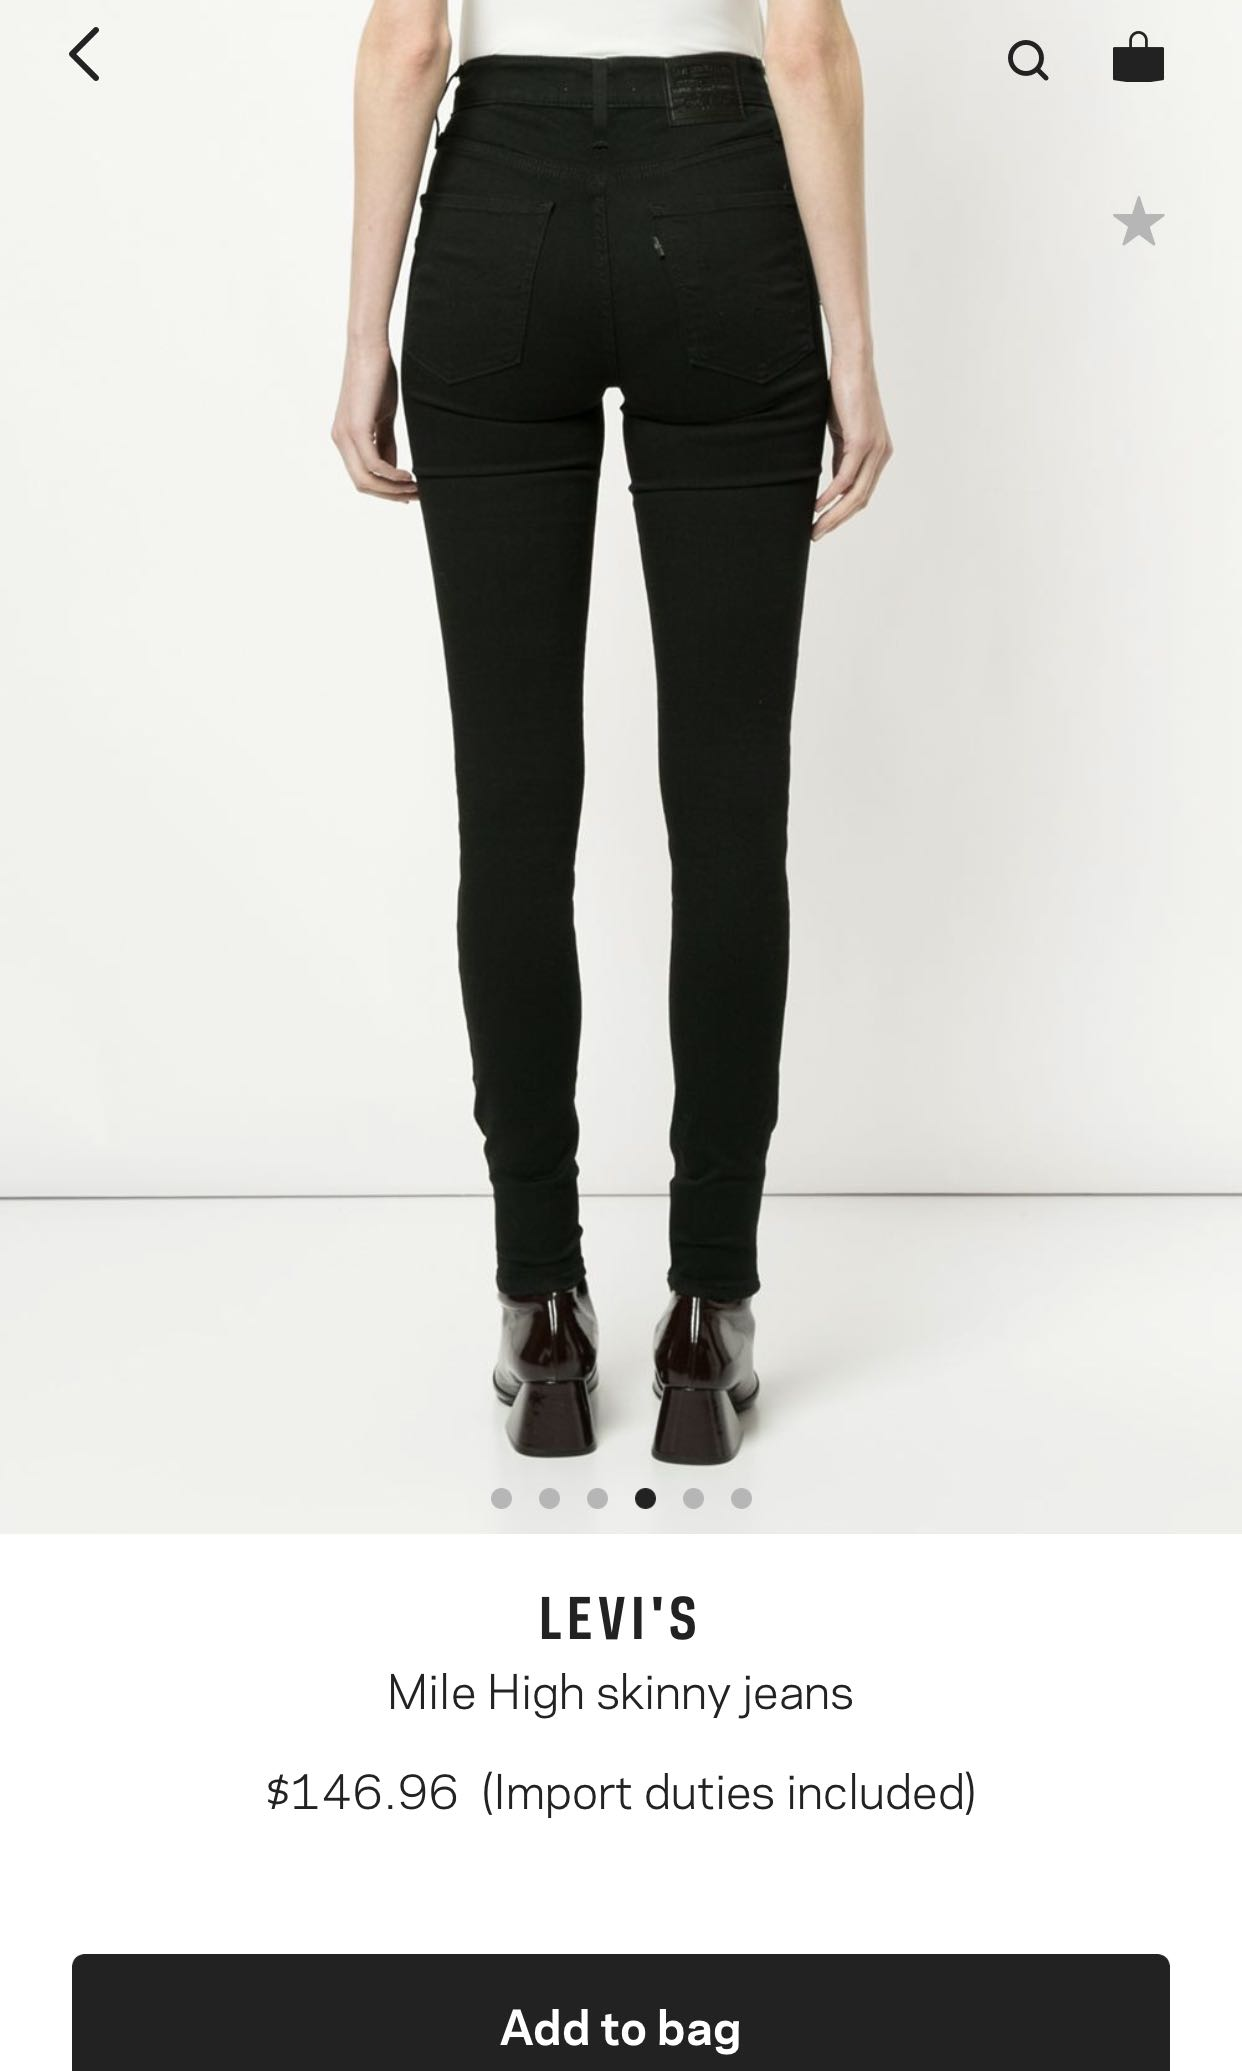 6e2a9f2b LEVI'S MILE HIGH SUPER SKINNY BLACK JEANS, Women's Fashion, Clothes ...